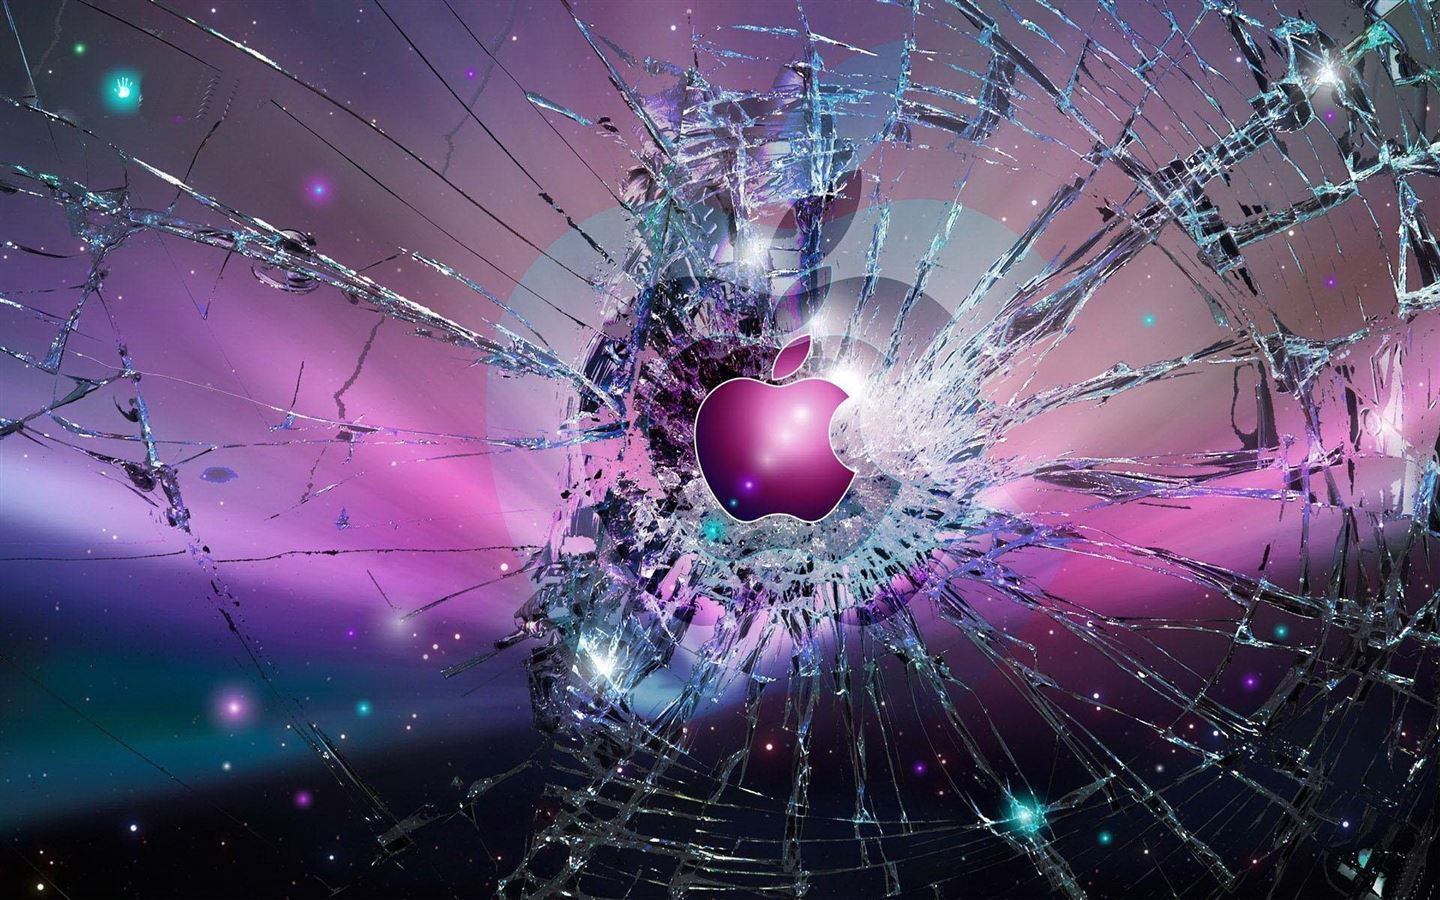 Apple Logo Broken Glass Mac Wallpaper Download Free Mac Wallpapers